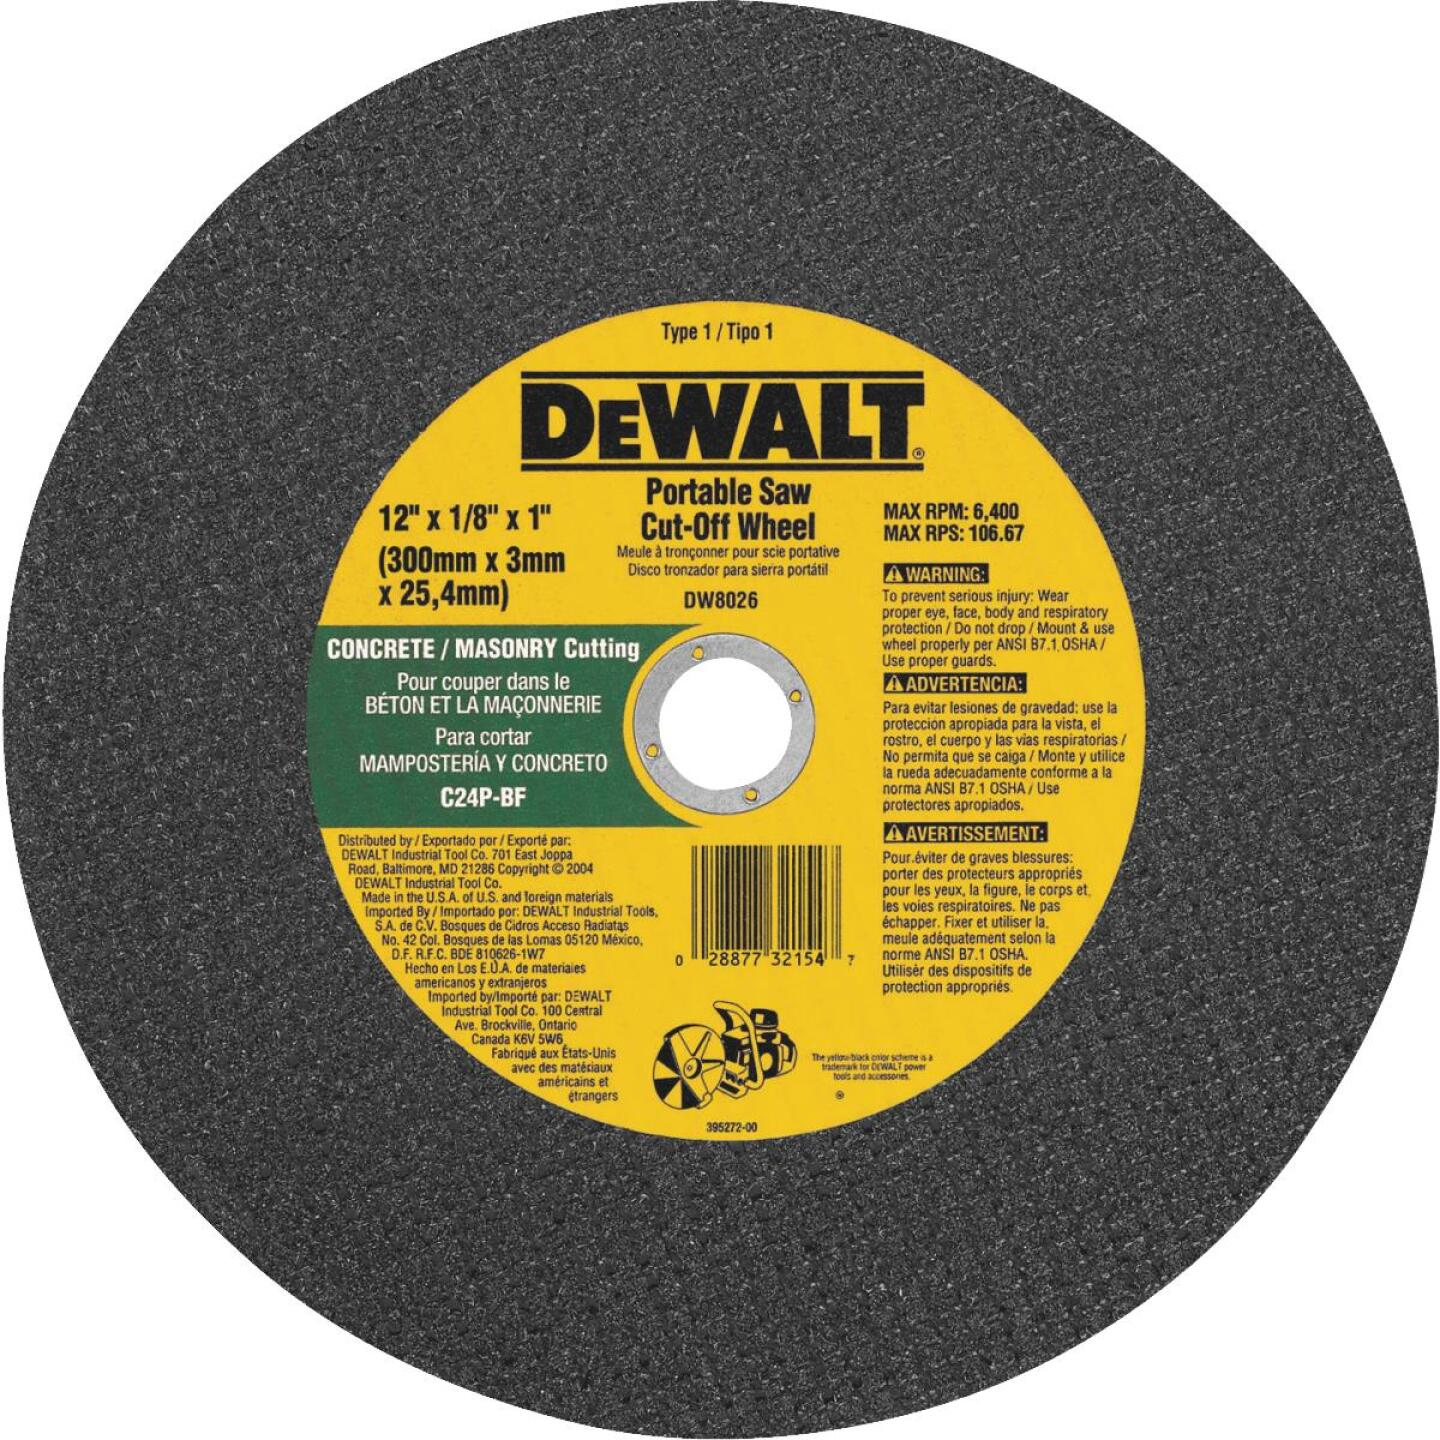 DeWalt HP Type 1 12 In. x 1/8 In. x 1 In. Masonry Cut-Off Wheel Image 1